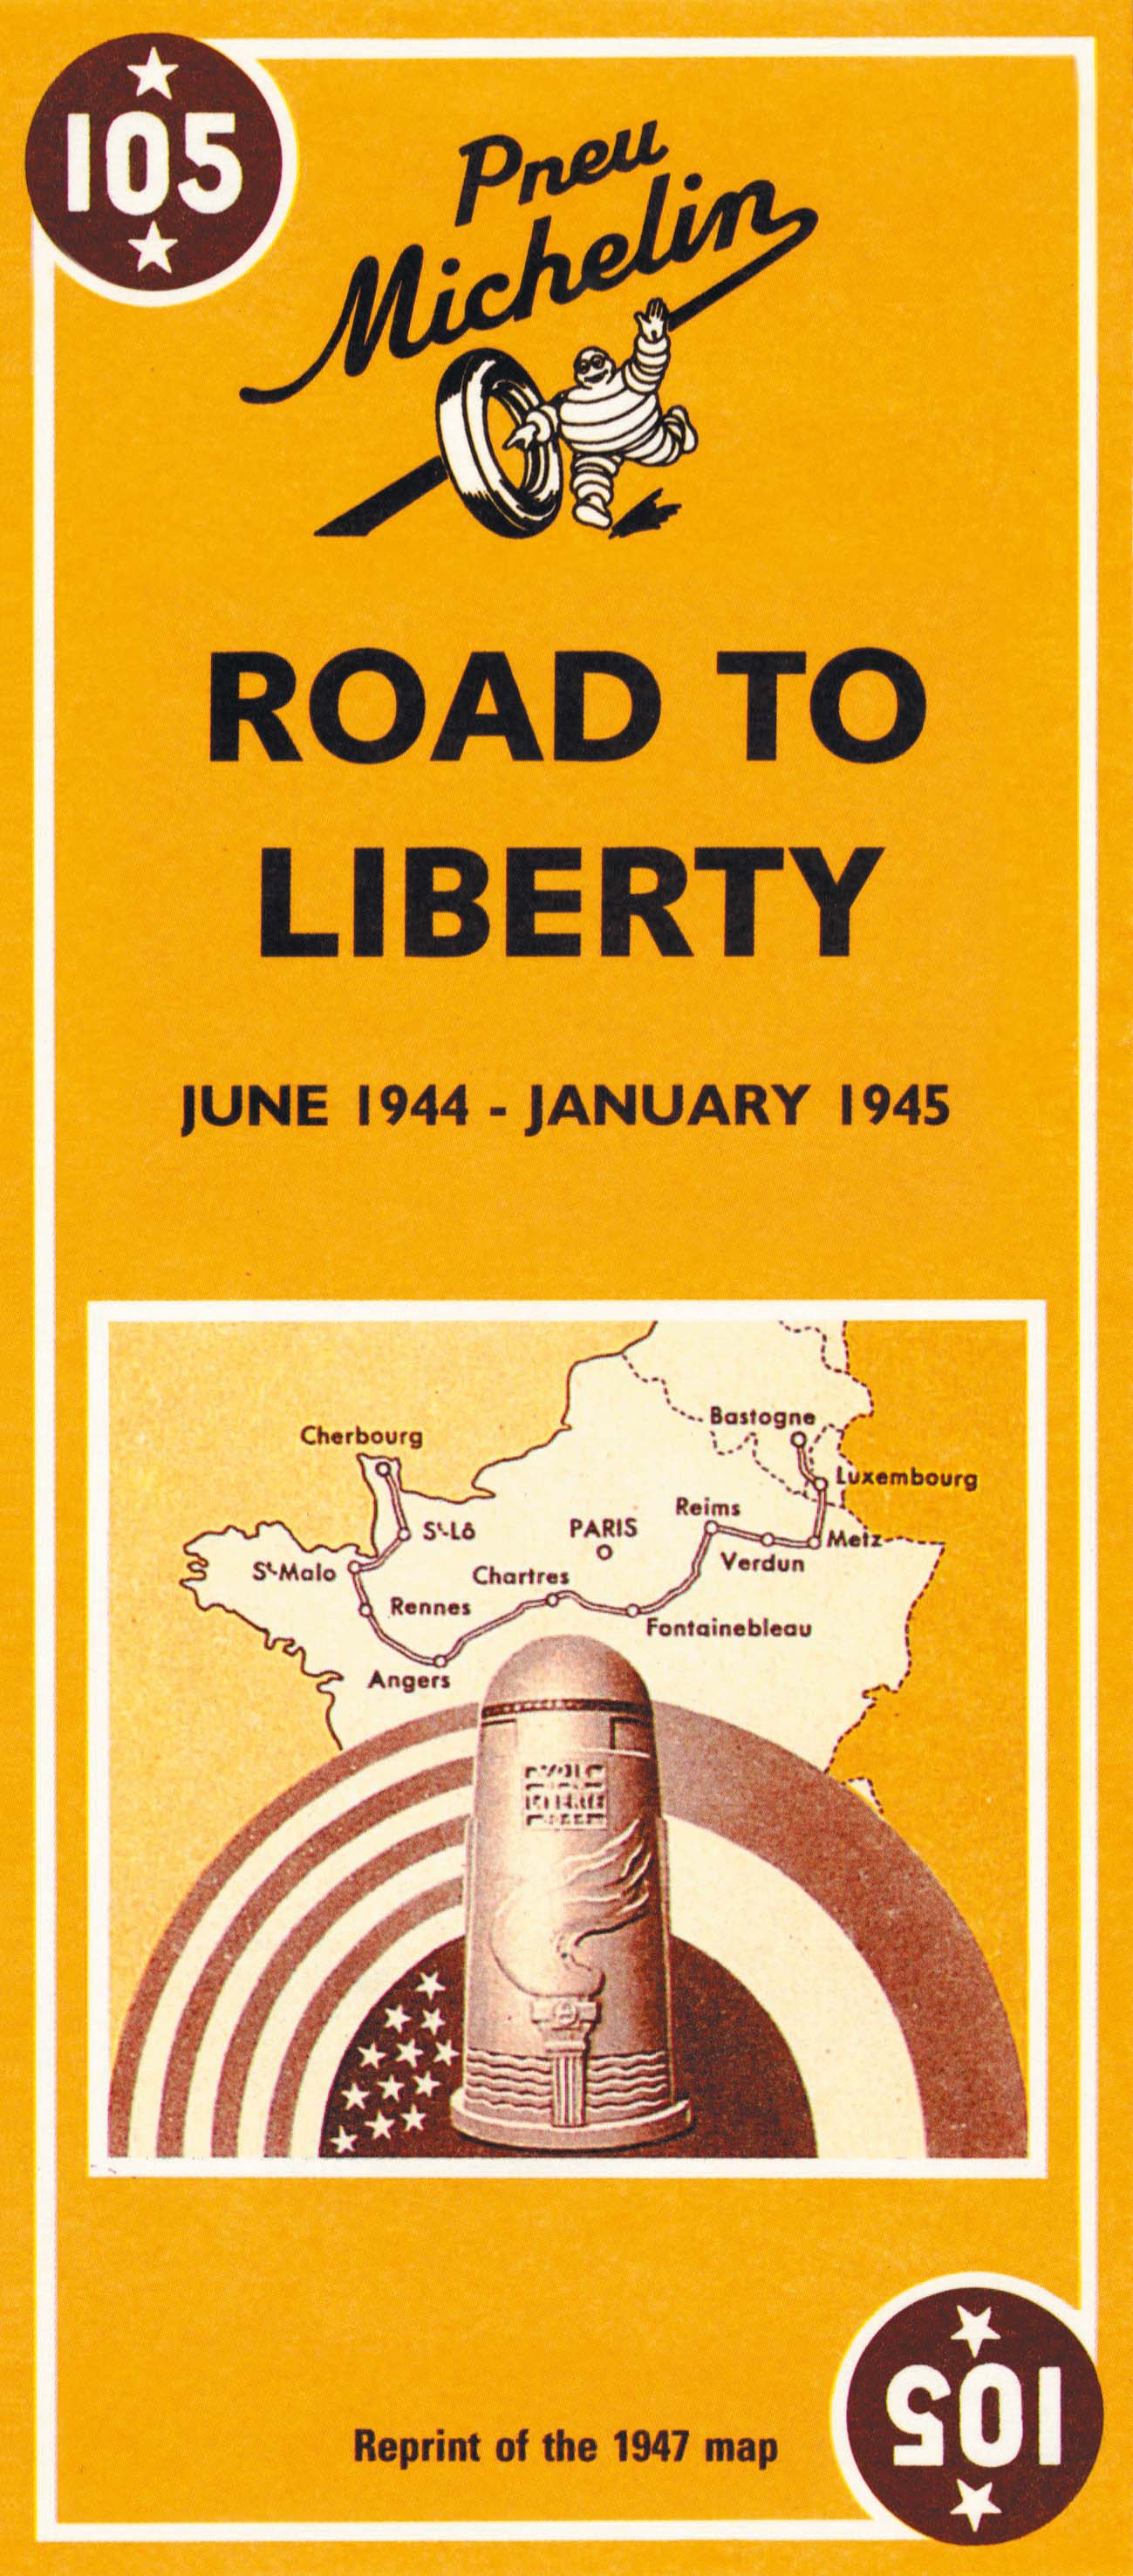 Historische Kaart 105 Road to Liberty | Michelin